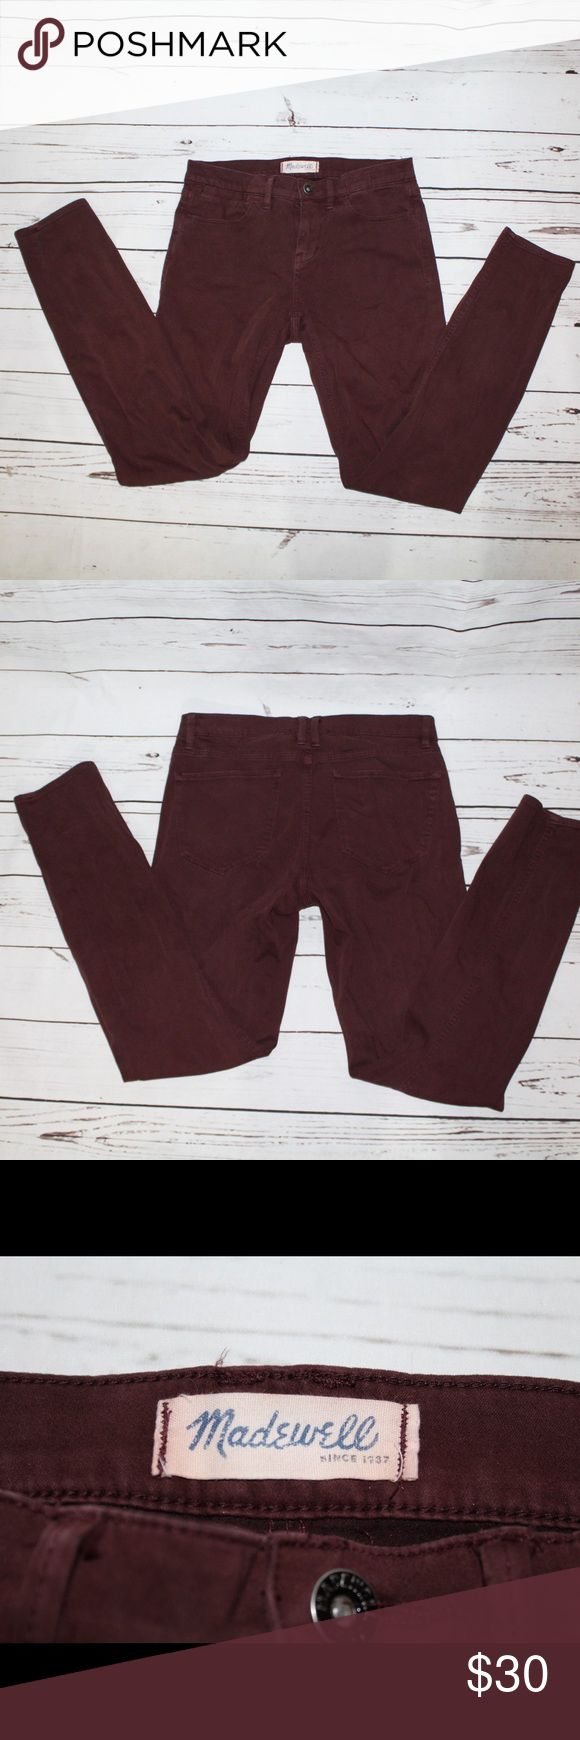 Madewell 27x28 Maroon Skinny Jeans Madewell 27x28 Maroon Skinny Jeans. Maroon color, reddish brown. Size 27. 28 inch inseam. Can be worn as regular pants for someone who is petite, or as crops for someone who wears tall sizes. These are in good used condition. Minor fading, though fairly even fading. They are well worn in, making them SUPER soft and comfortable. Madewell Jeans